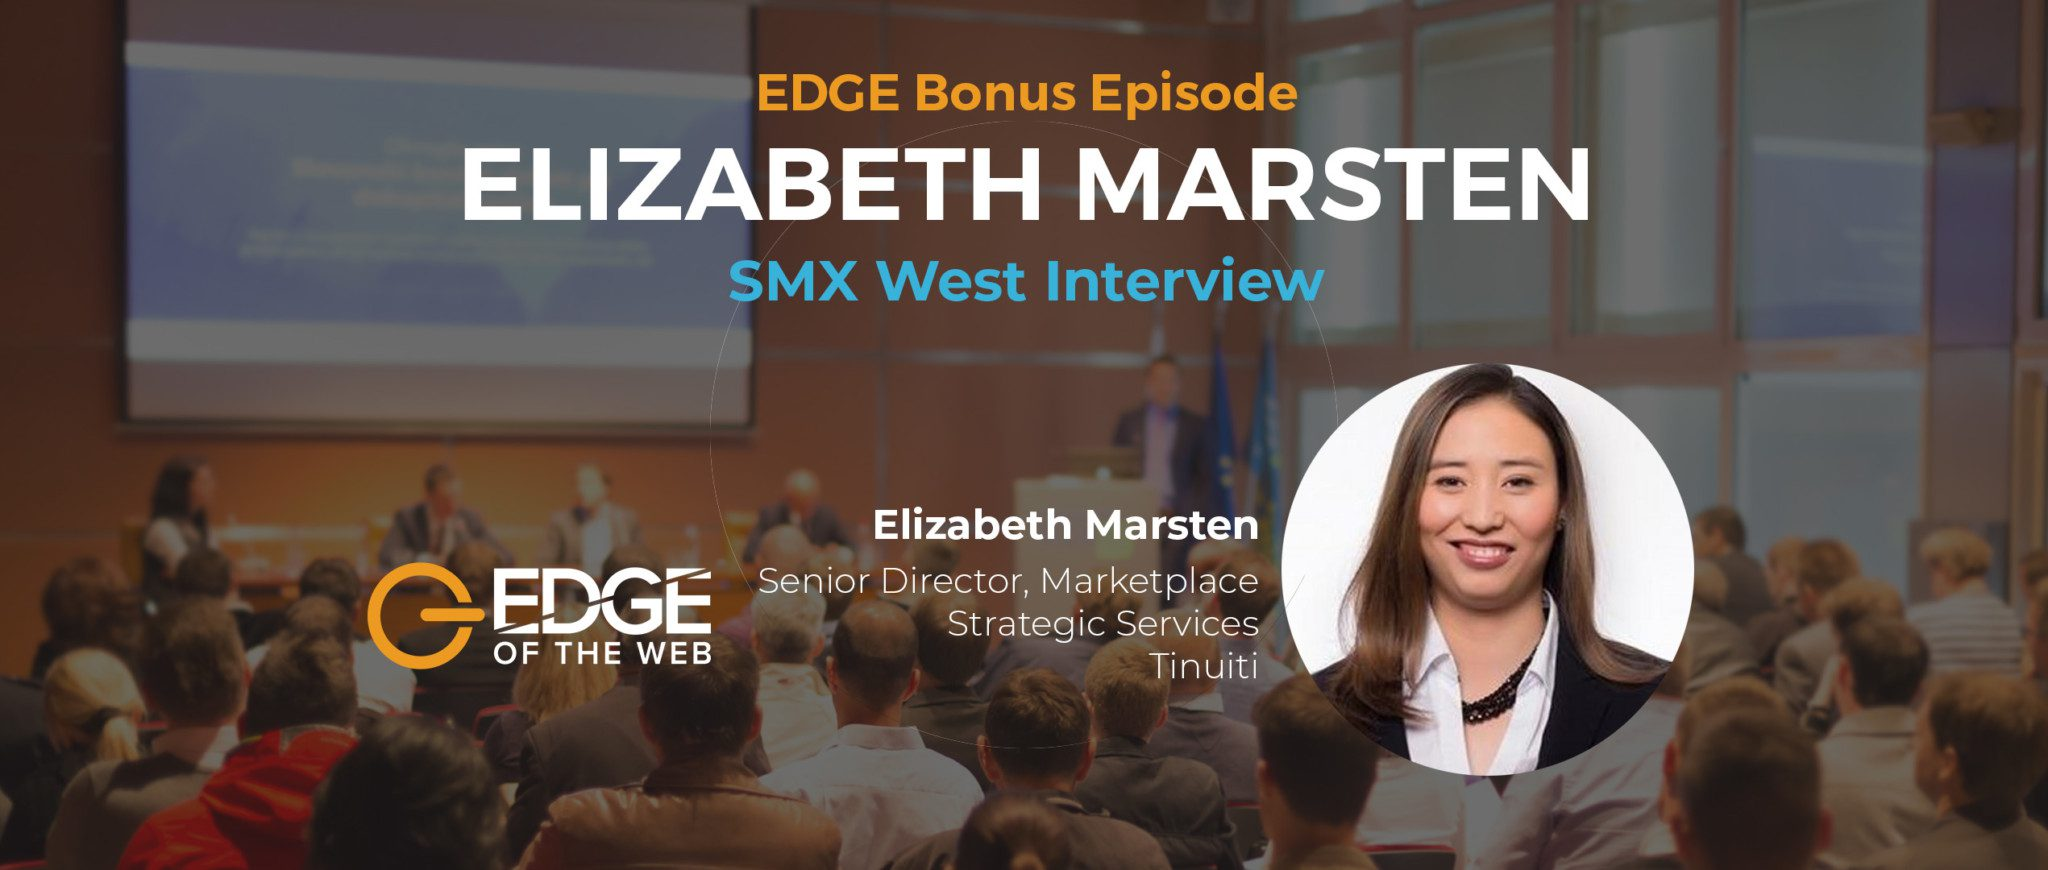 Elizabeth Marsten EDGE Bonus Episode Featured Image